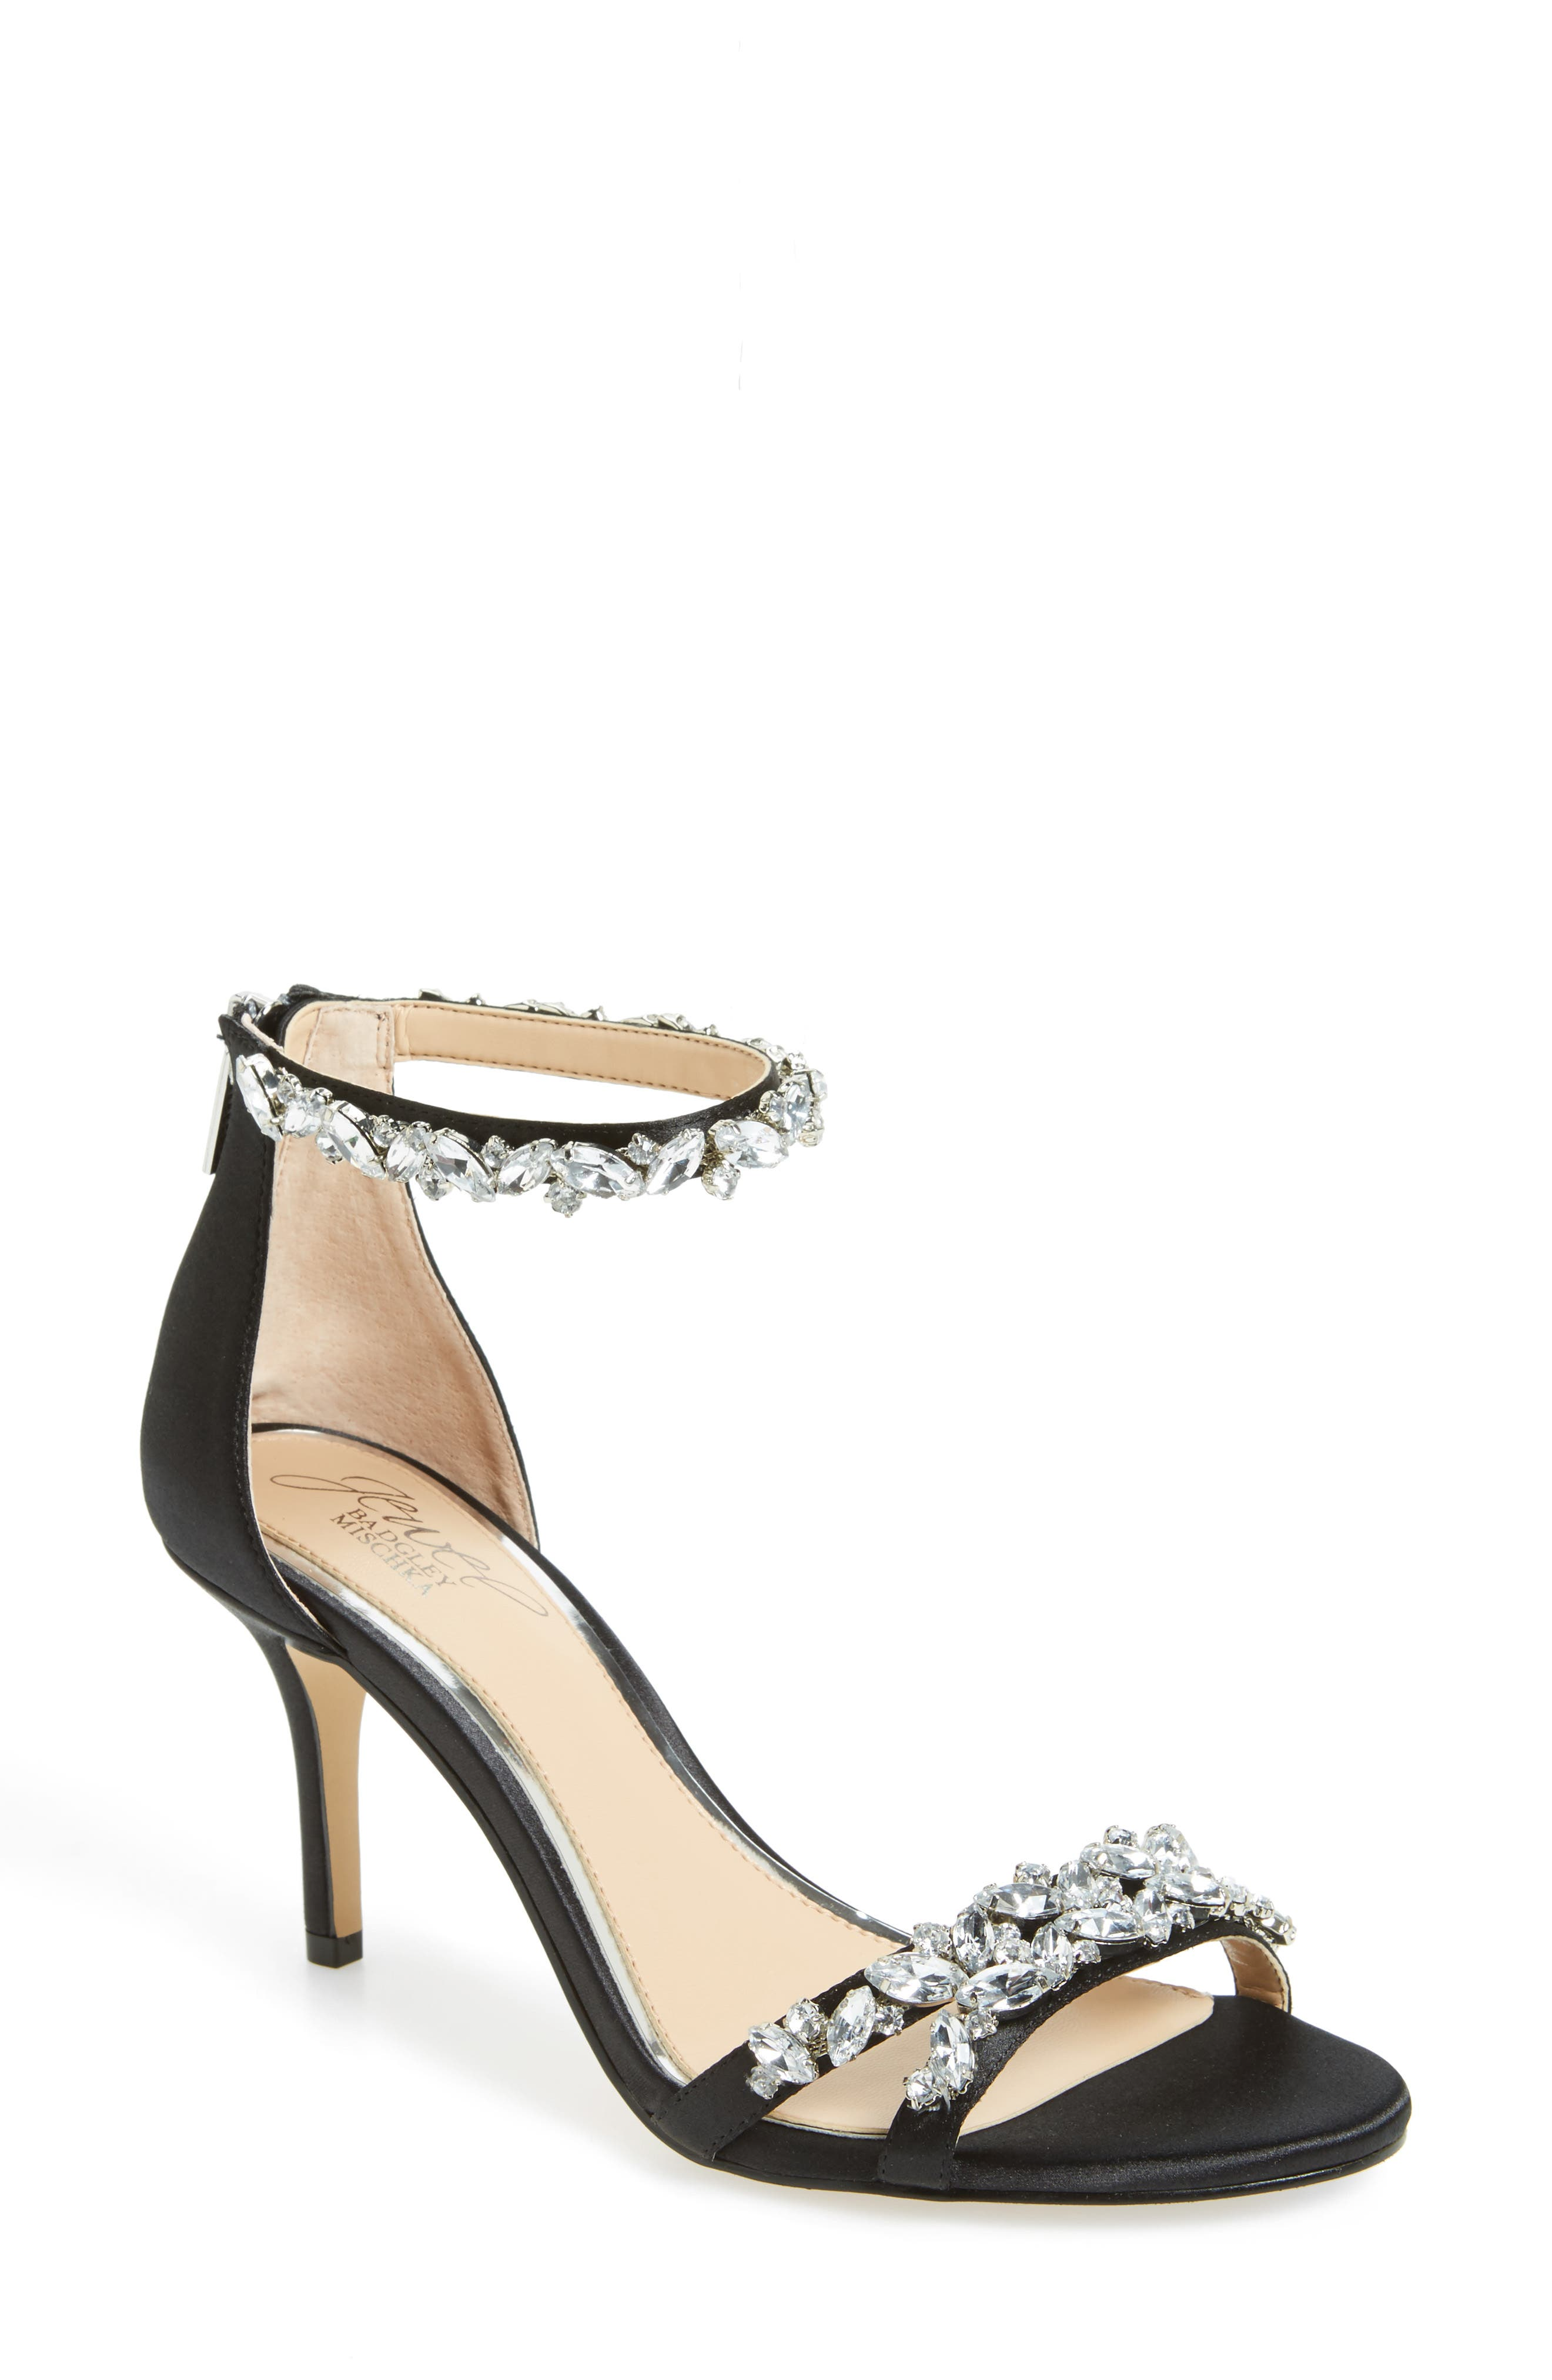 Caroline Embellished Sandal,                         Main,                         color,